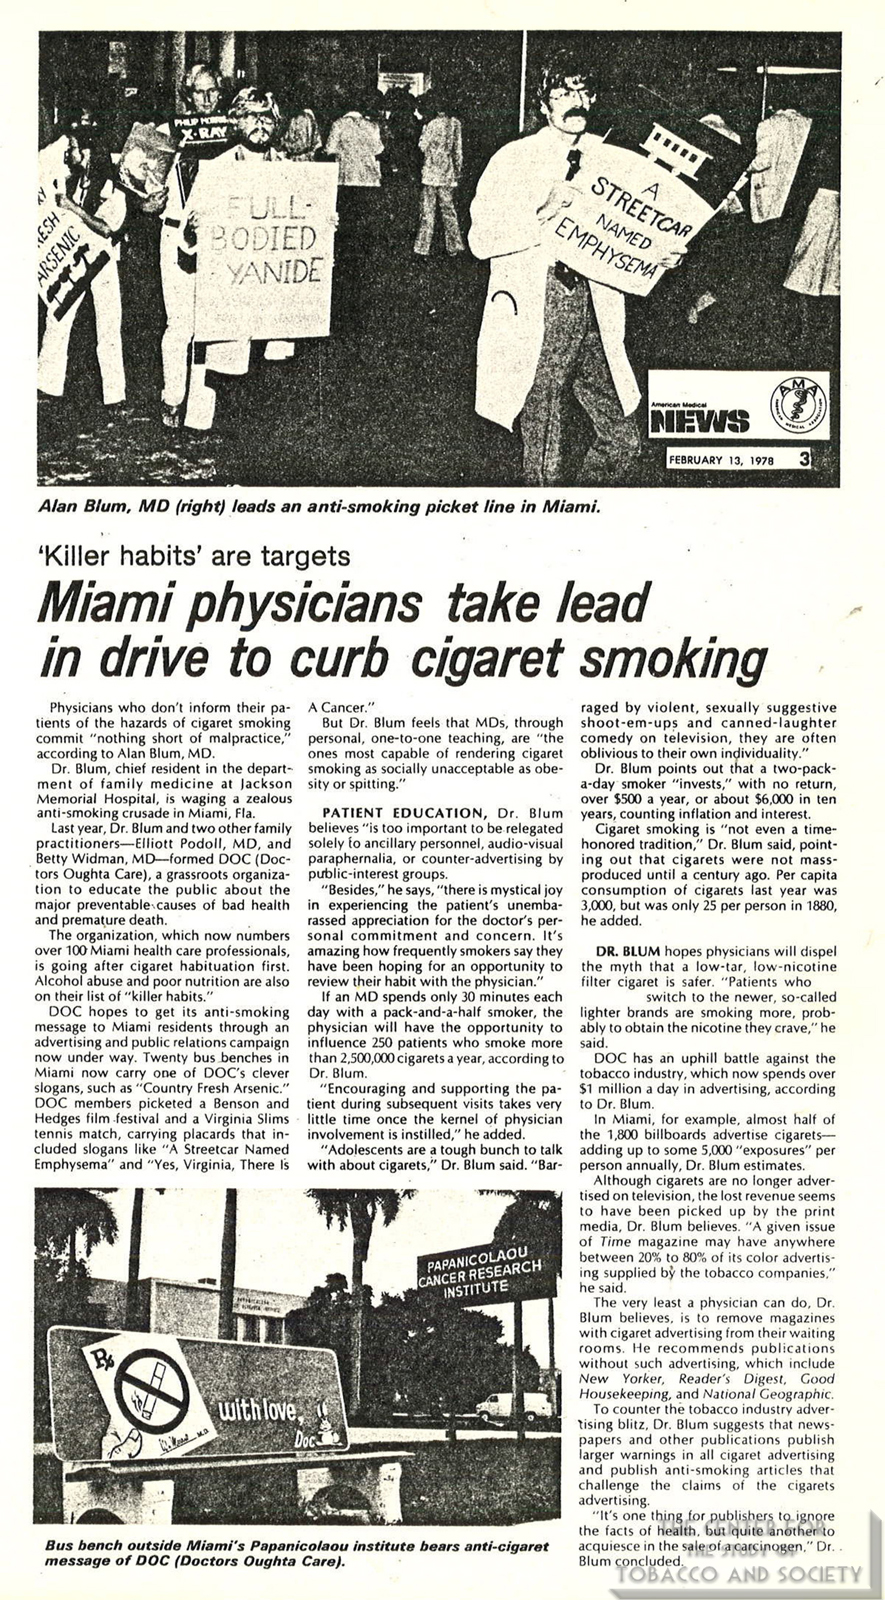 1978 02 13 AM News Miami Physicians Take Lead in Drive to Curb Smoking